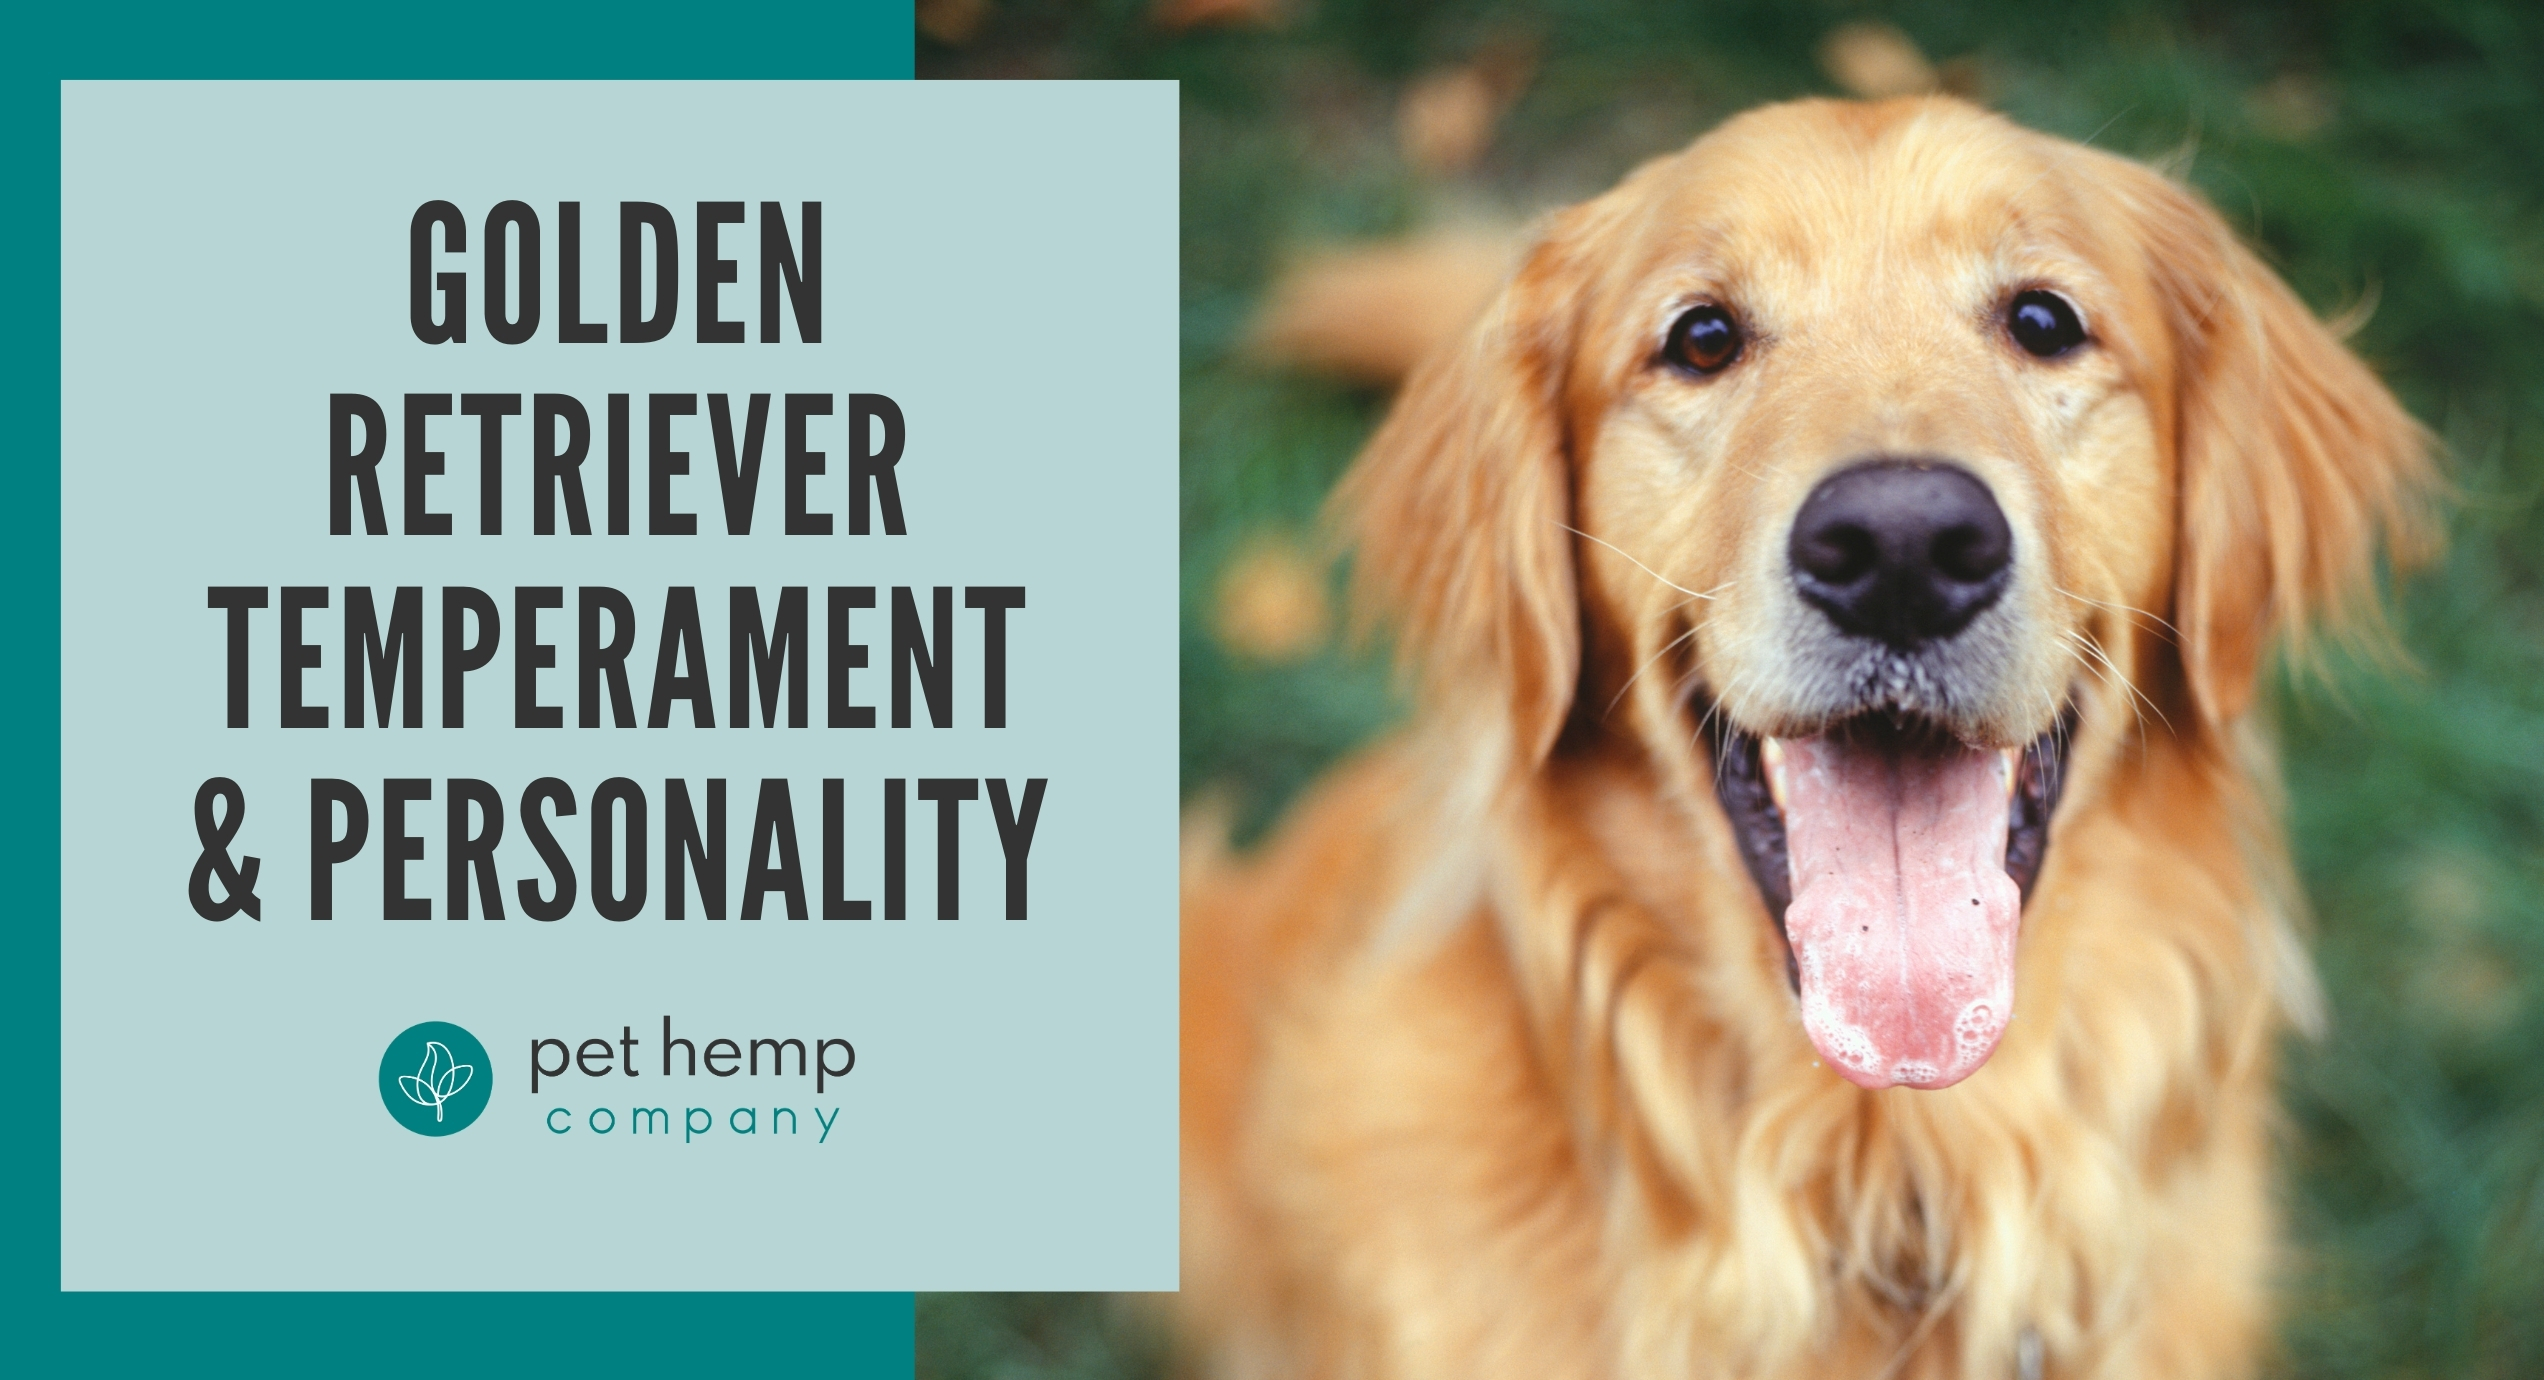 golden retriever temperament personality